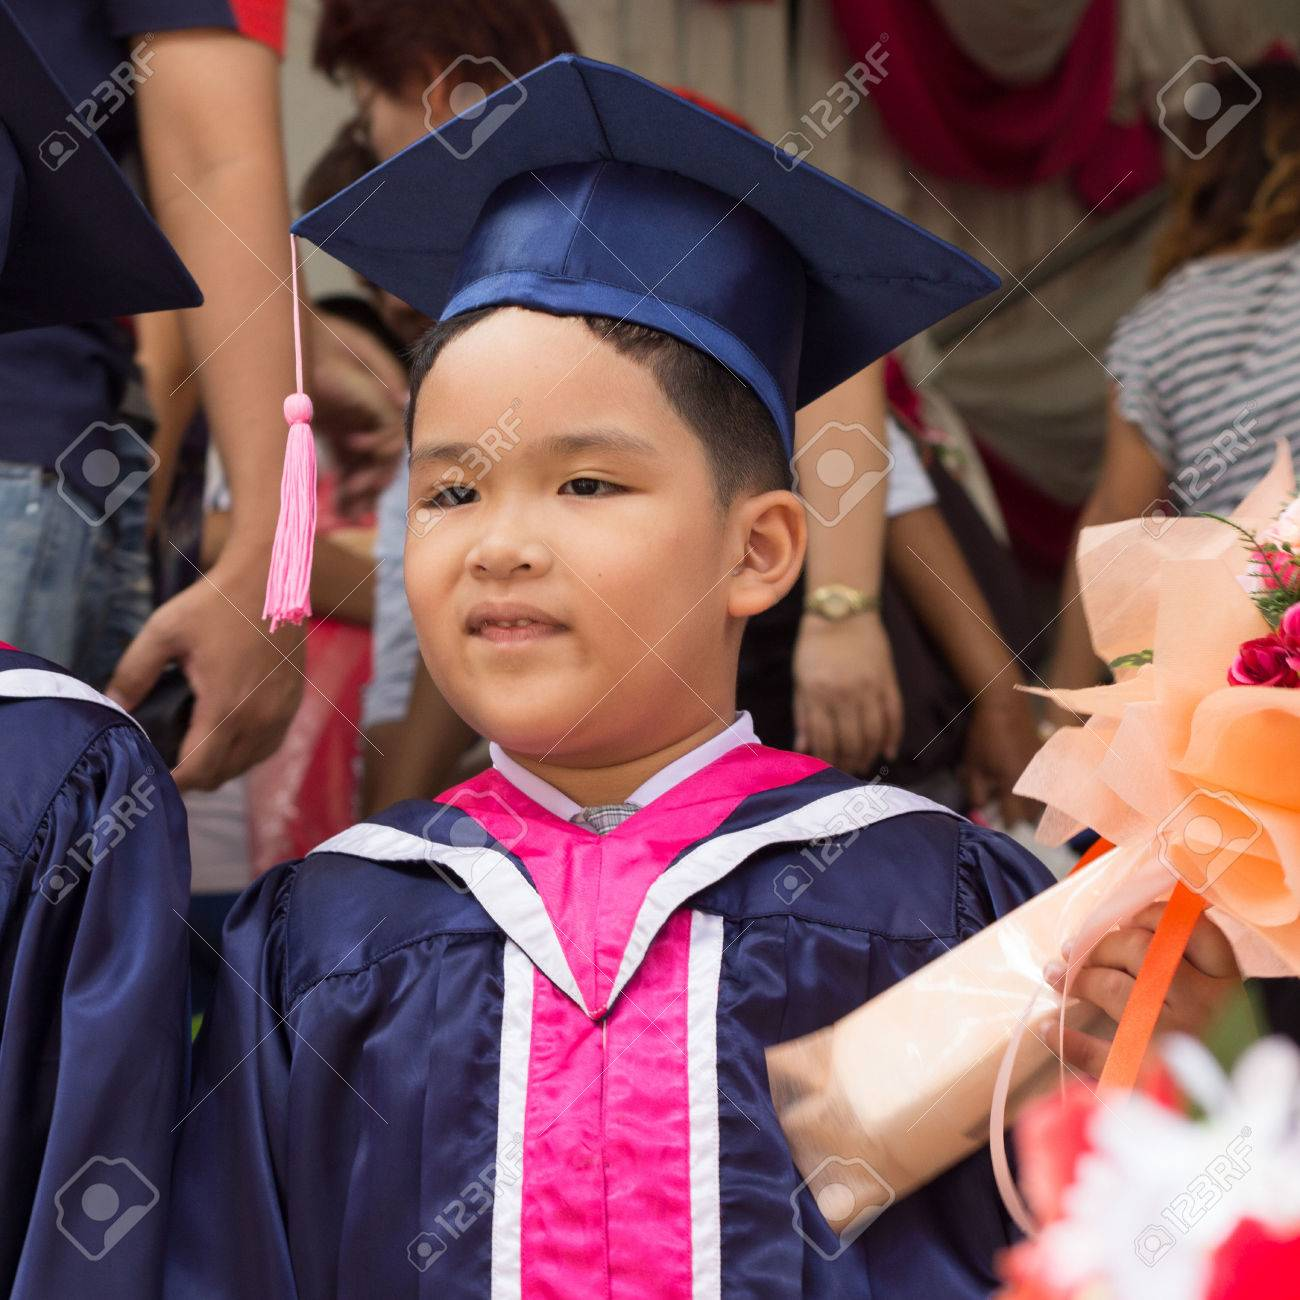 Asian Kid In Graduation Gown And Cap. Stock Photo, Picture And ...